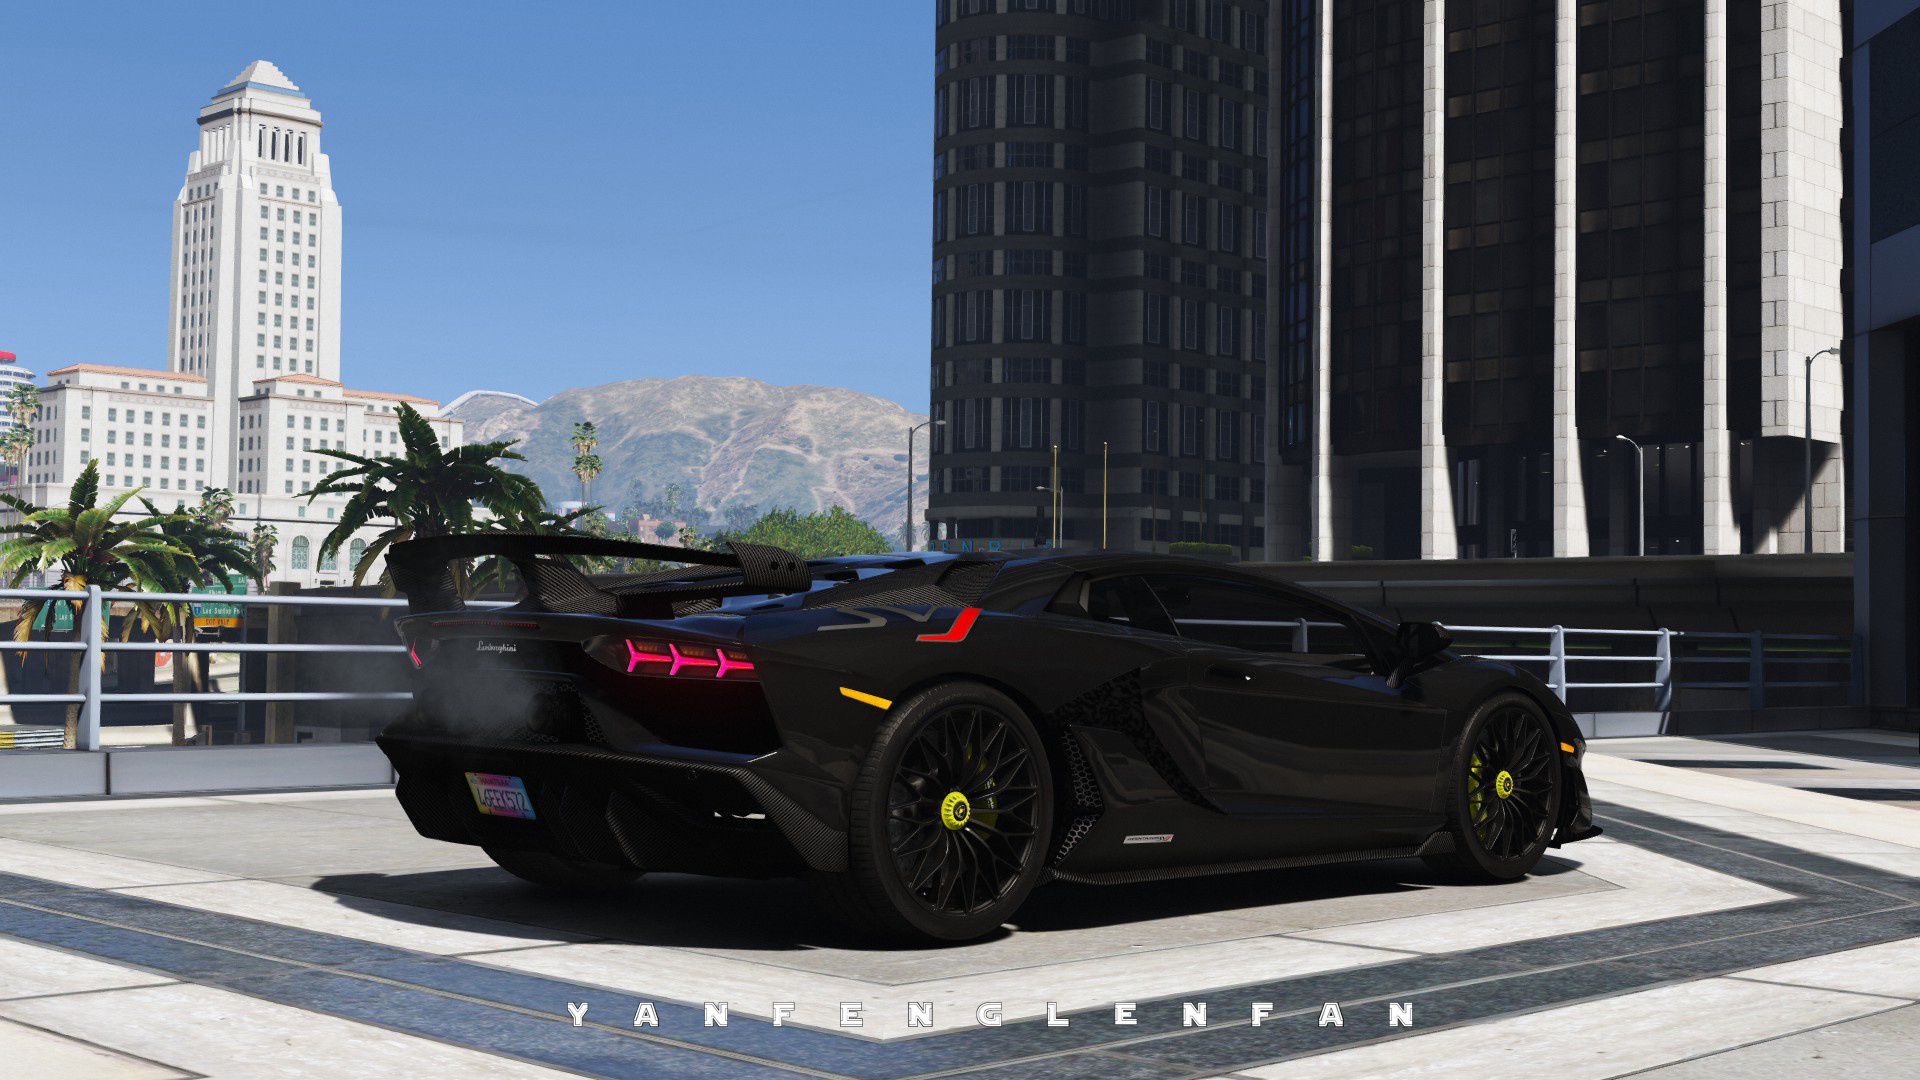 Car Rim Repair >> 2019 Lamborghini Aventador SVJ [ Add-On | Digital gear] - GTA5-Mods.com